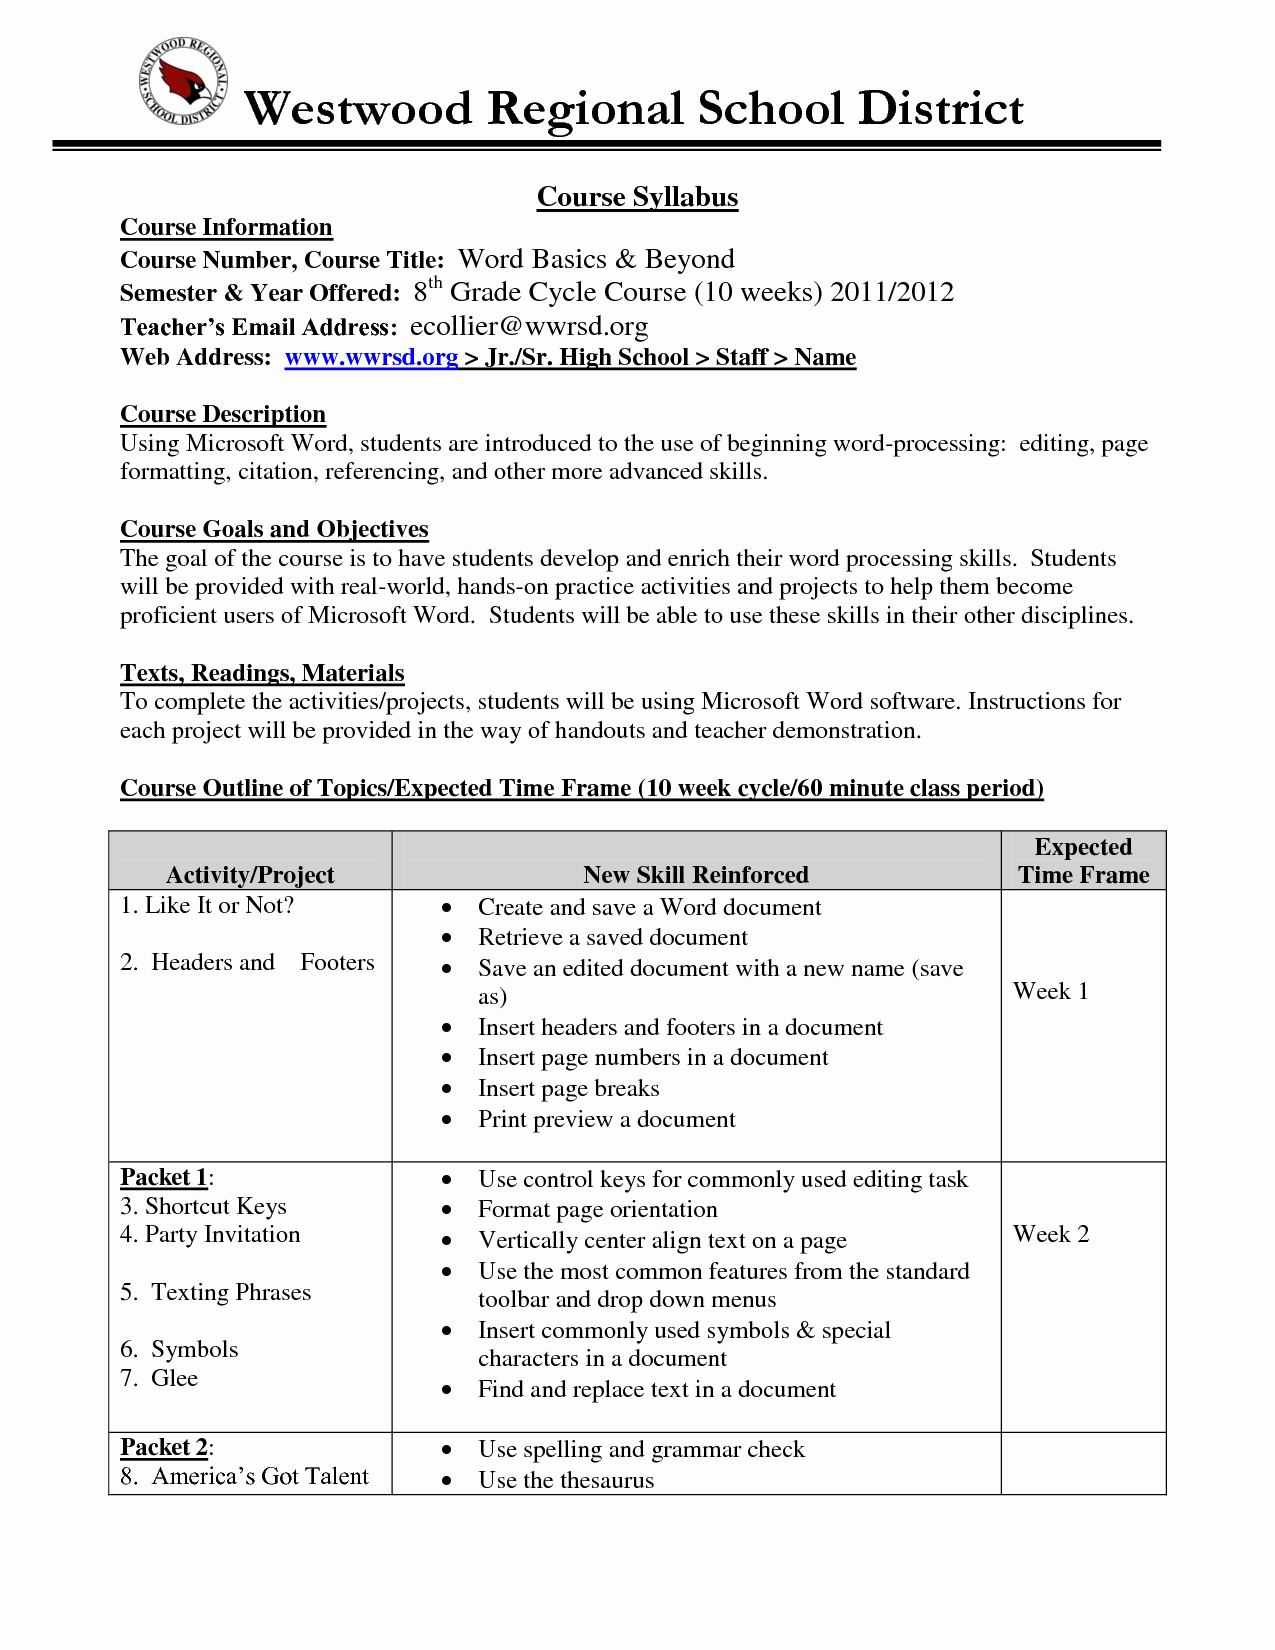 Middle School Science Syllabus Template Luxury High School Syllabus Example High School Syllabus Middle